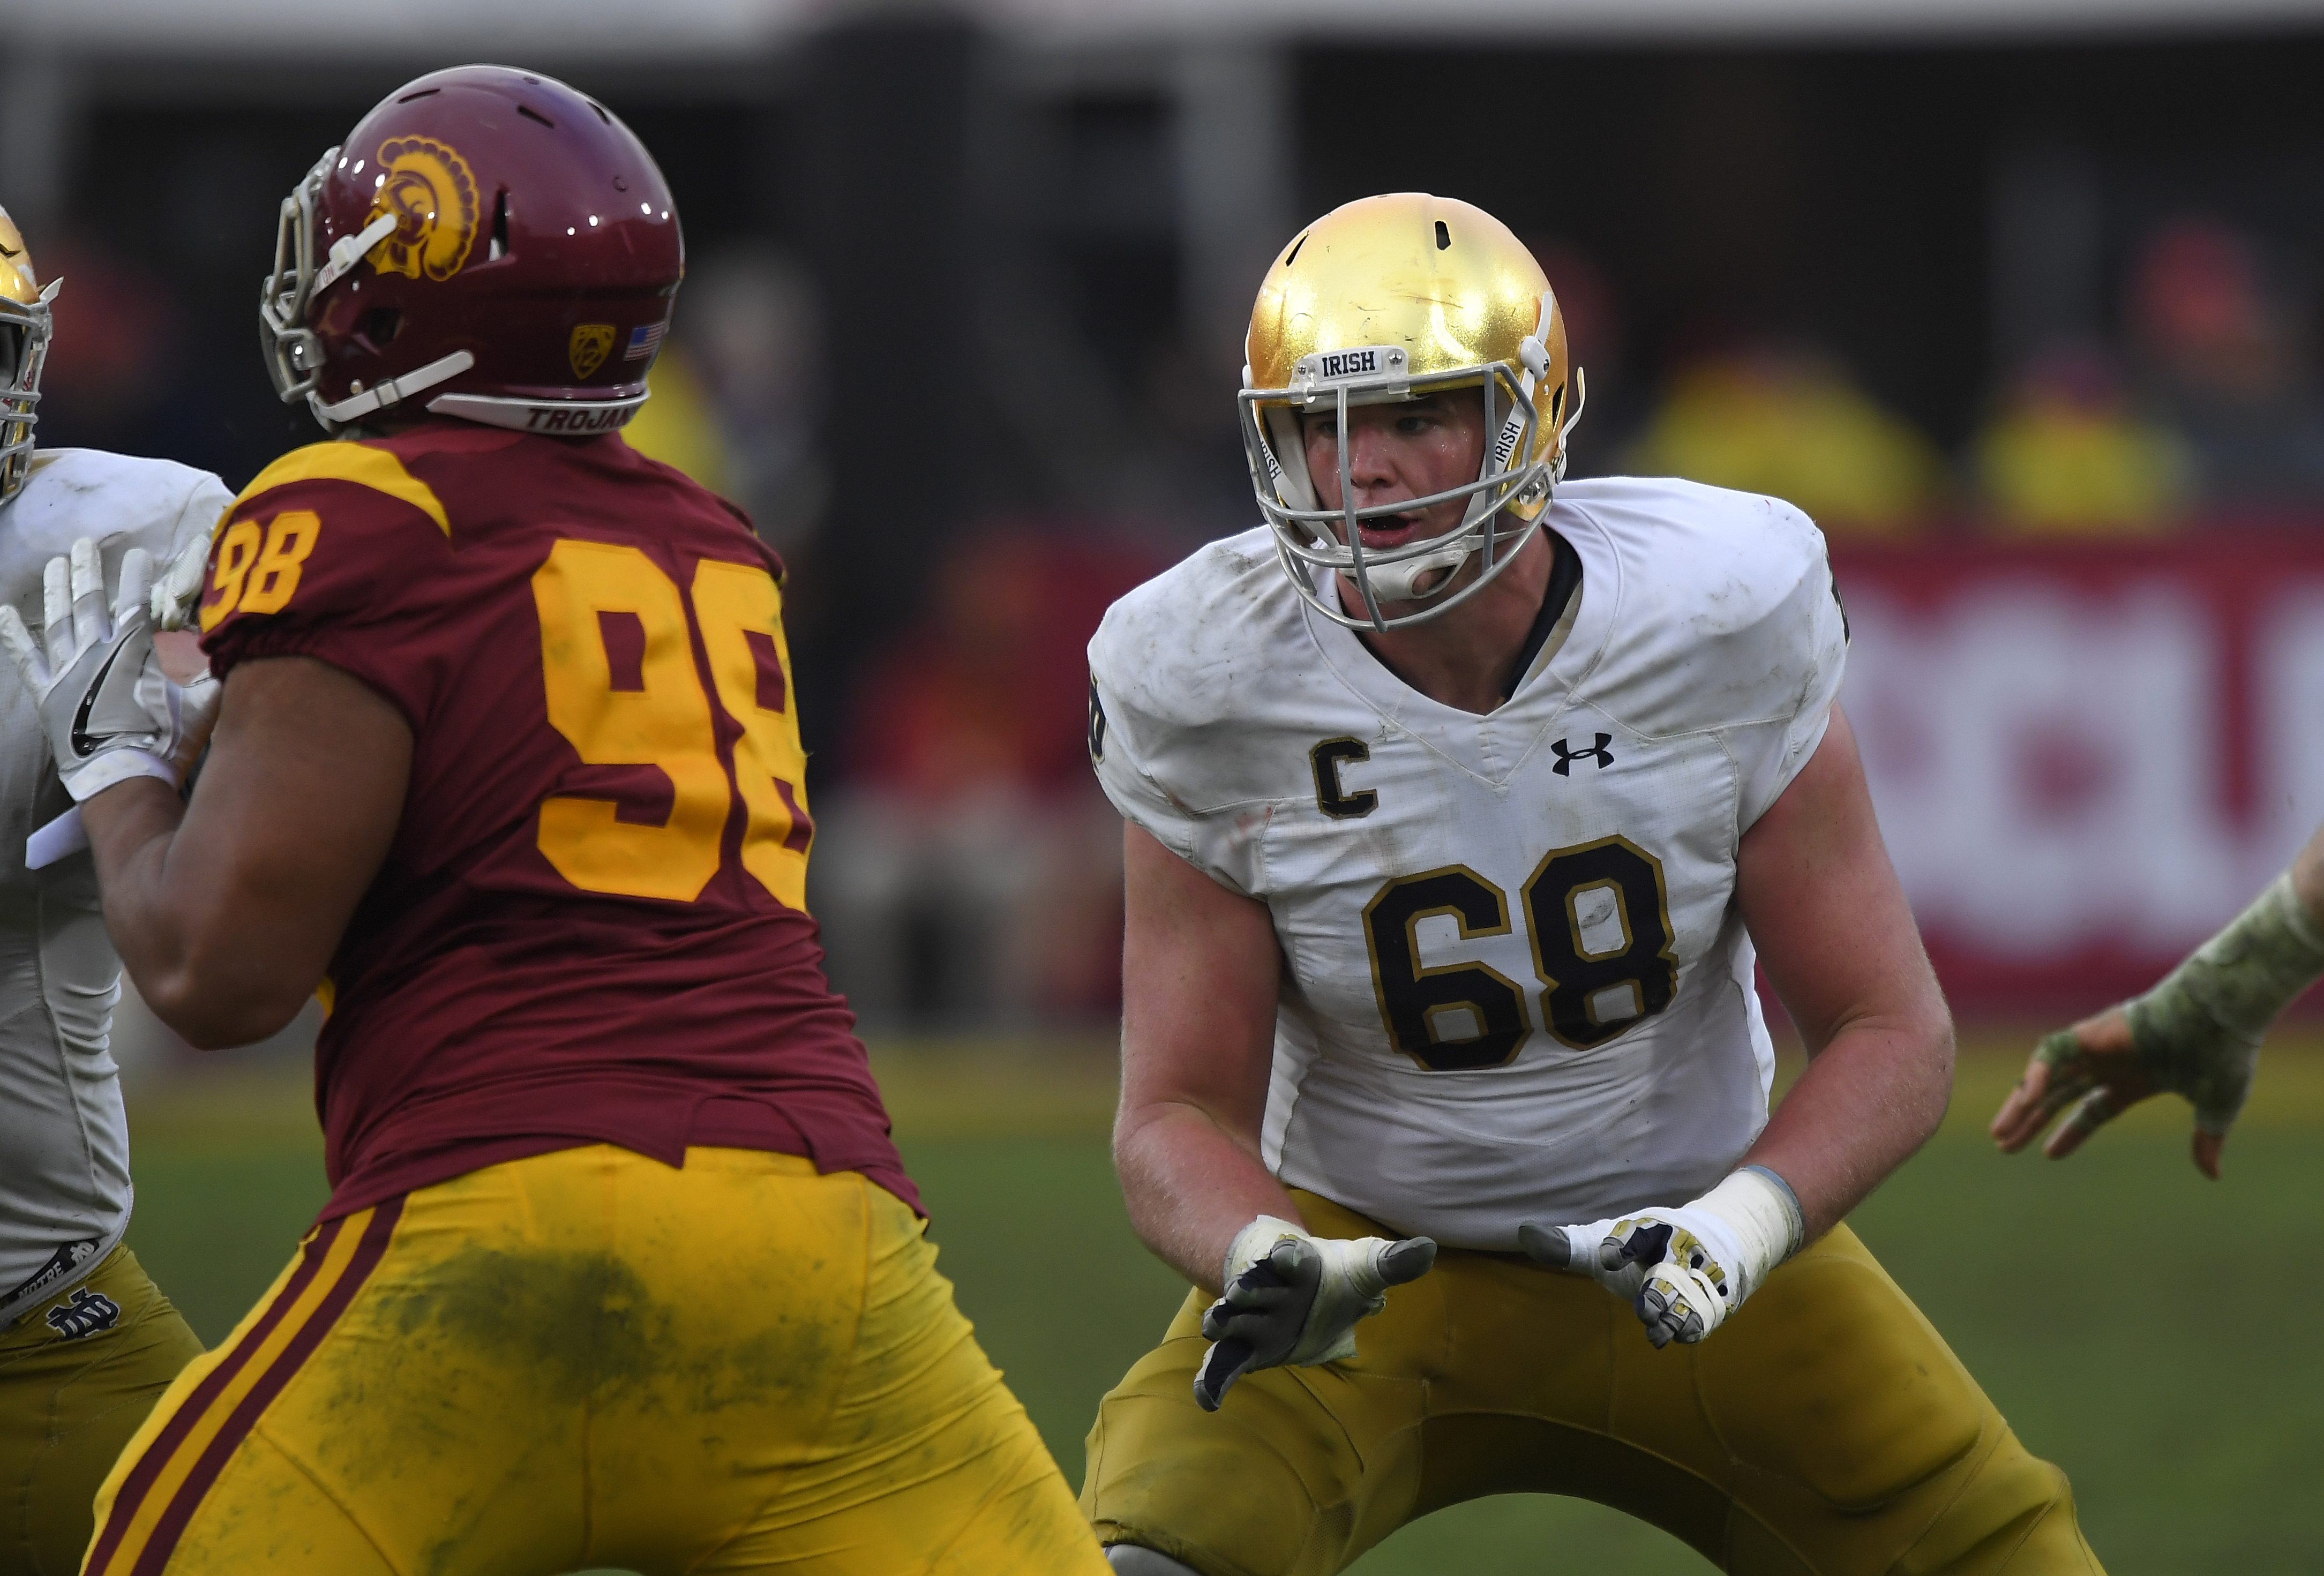 File-This Nov. 26, 2016, file photo shows Notre Dame offensive lineman Mike McGlinchey, left, blocking Southern California defensive tackle Josh Fatu during the second half of an NCAA college football game, in Los Angeles. McGlinchey was named to the second team AP Preseason All-America Team on Tuesday, Aug. 22, 2017. (AP Photo/Mark J. Terrill, File)